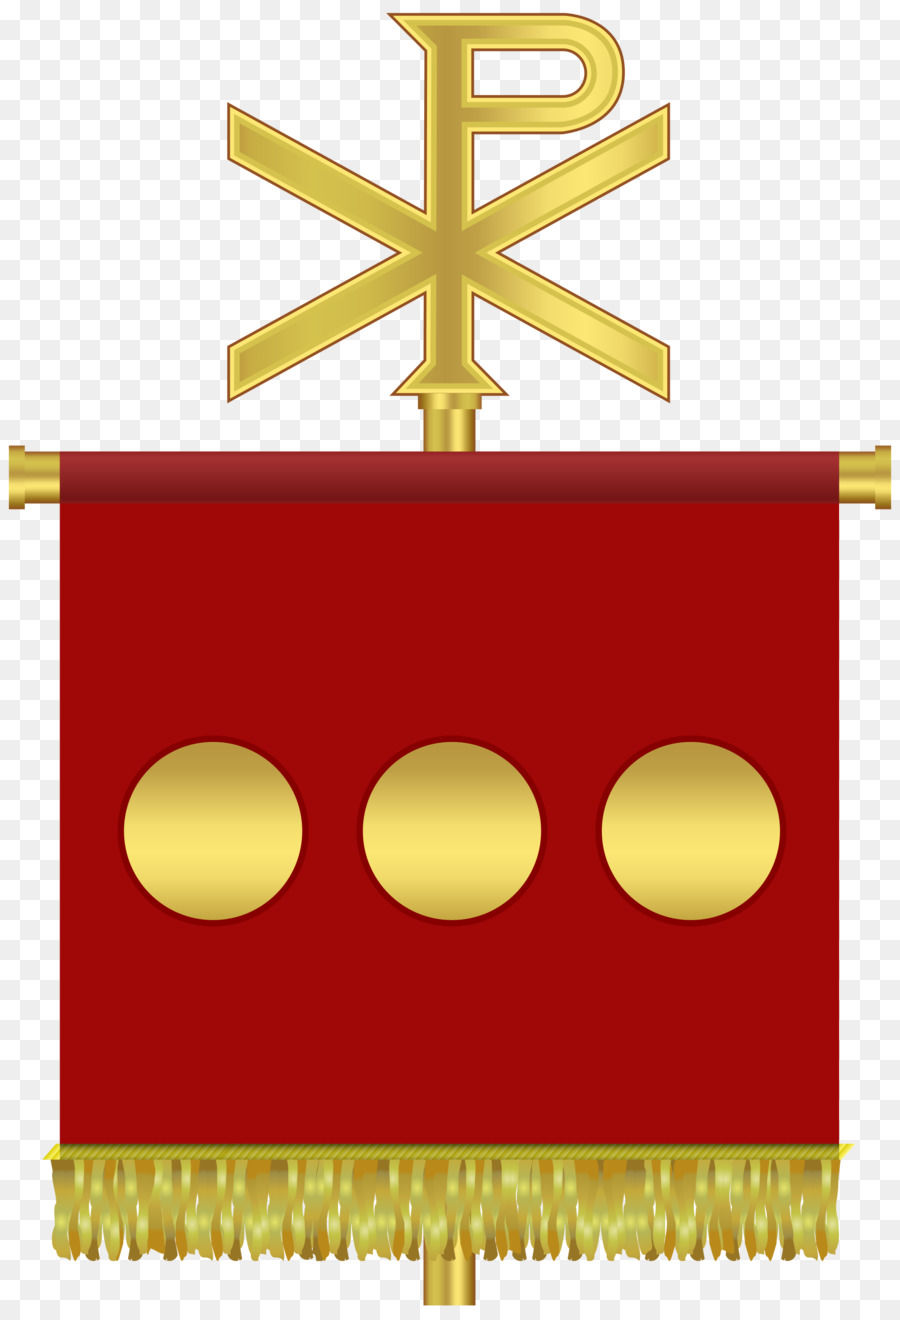 Cartoon png download free. Rome clipart flag rome